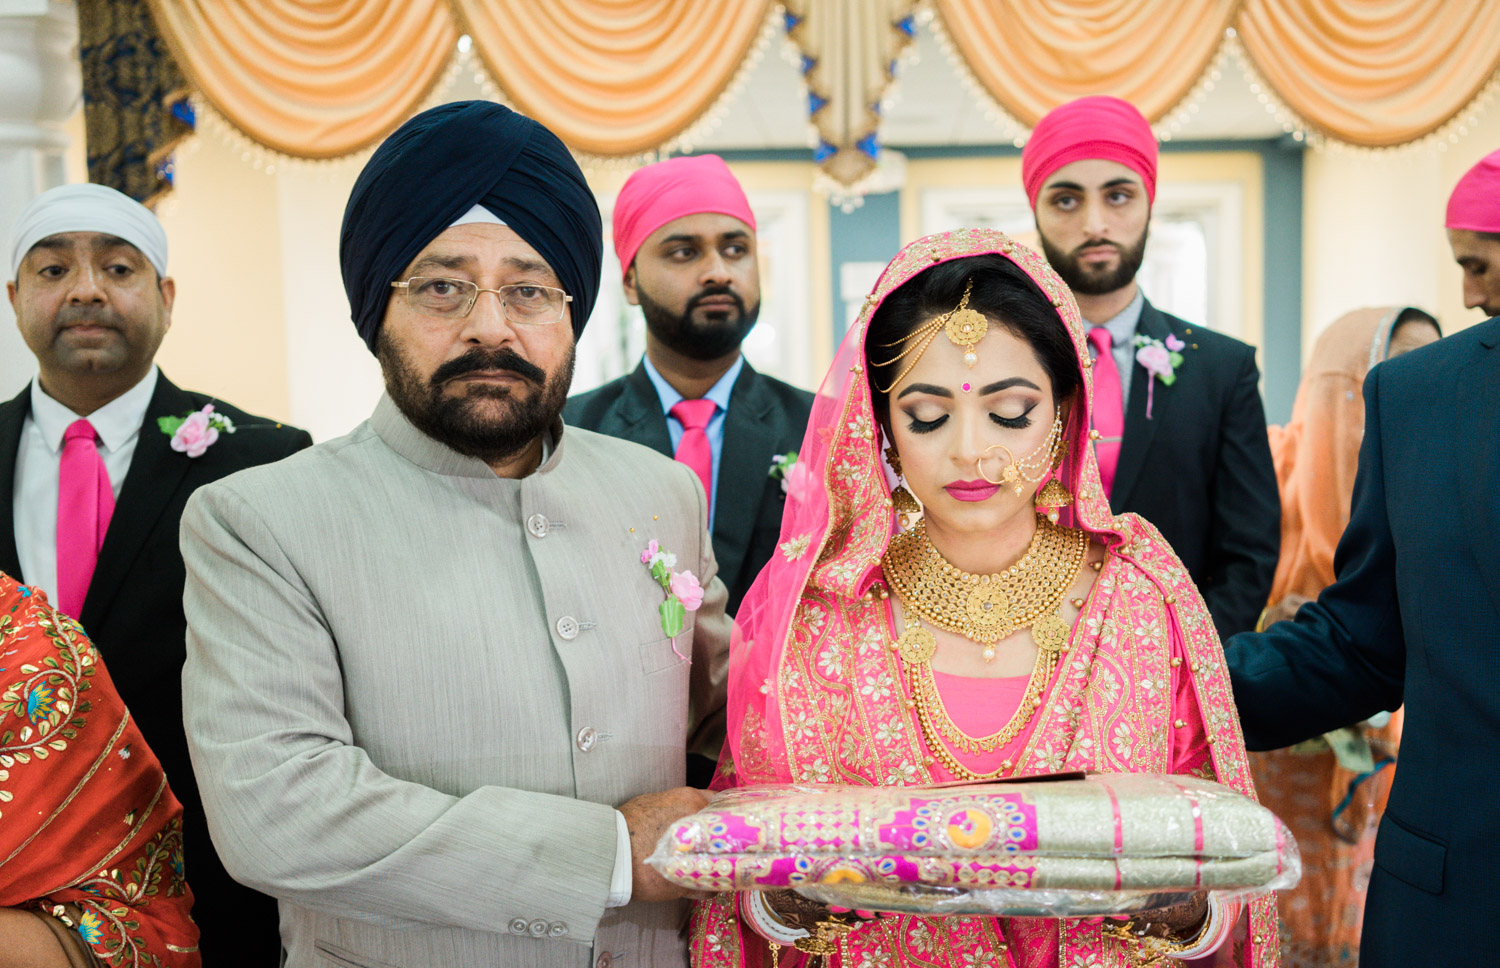 Father of the bride walks her down the aisle inside the gurudwara.